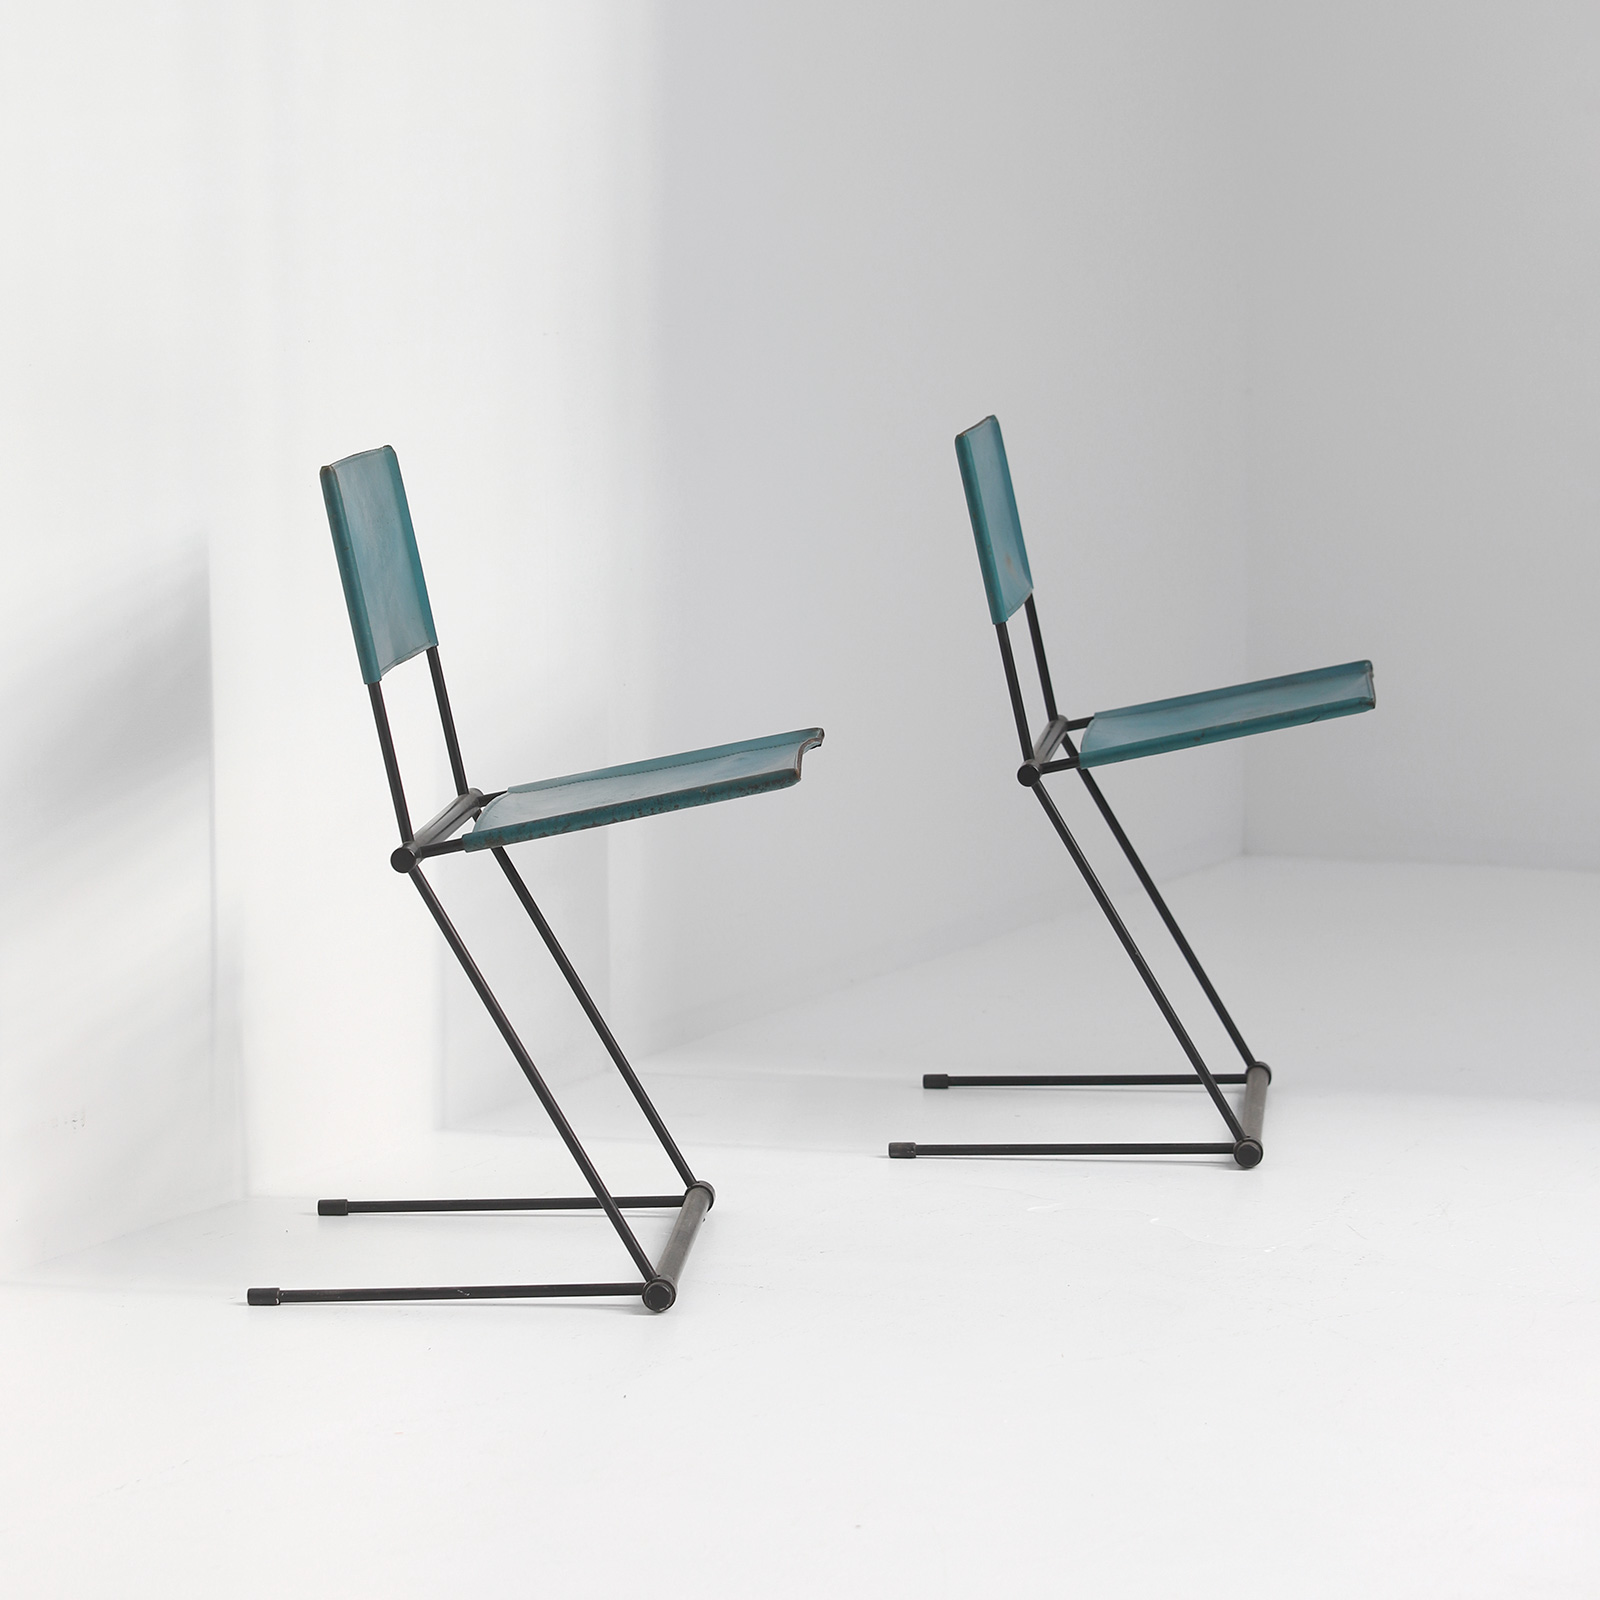 Ballerina Chairs By Herbert Ohl For Matteo Grassi